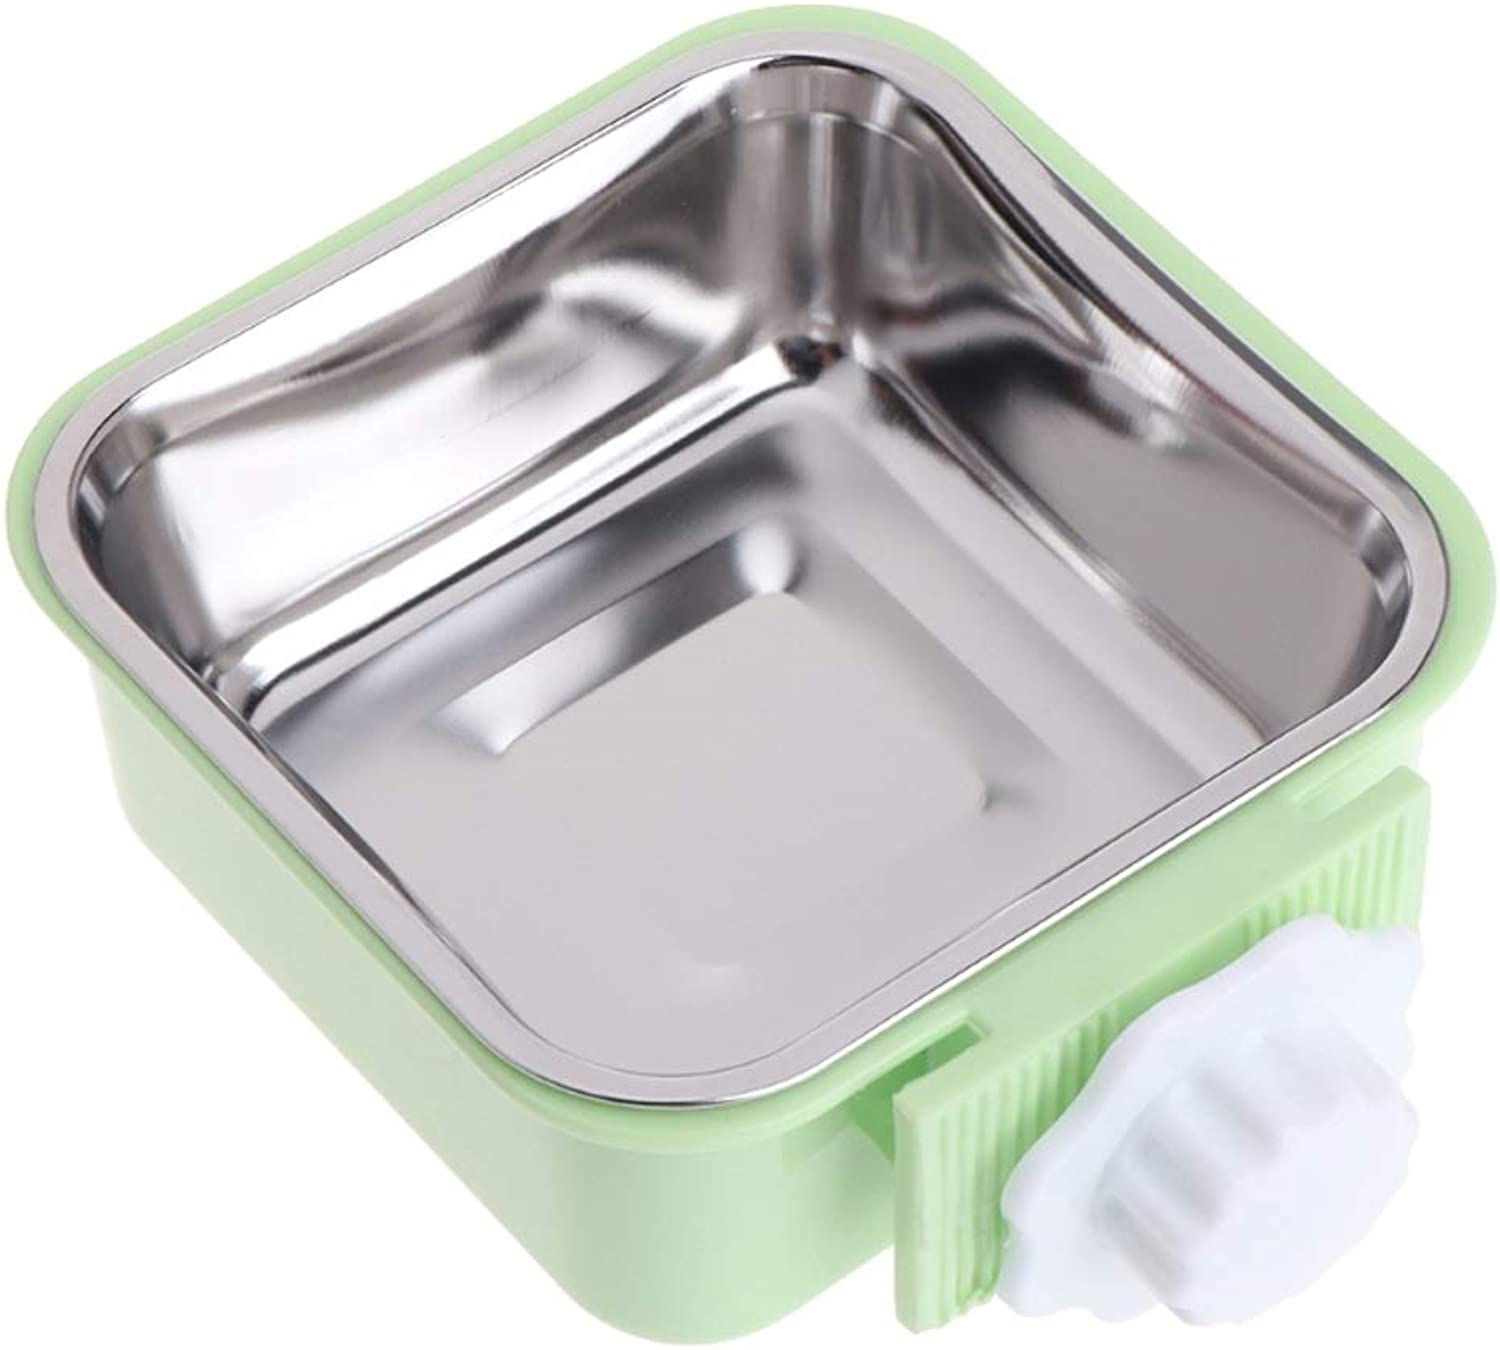 NYDZDM Bowl Stainless Steel Water Food Feeder,Dog Cat Hanging Cage Square Supplies (color   Green)